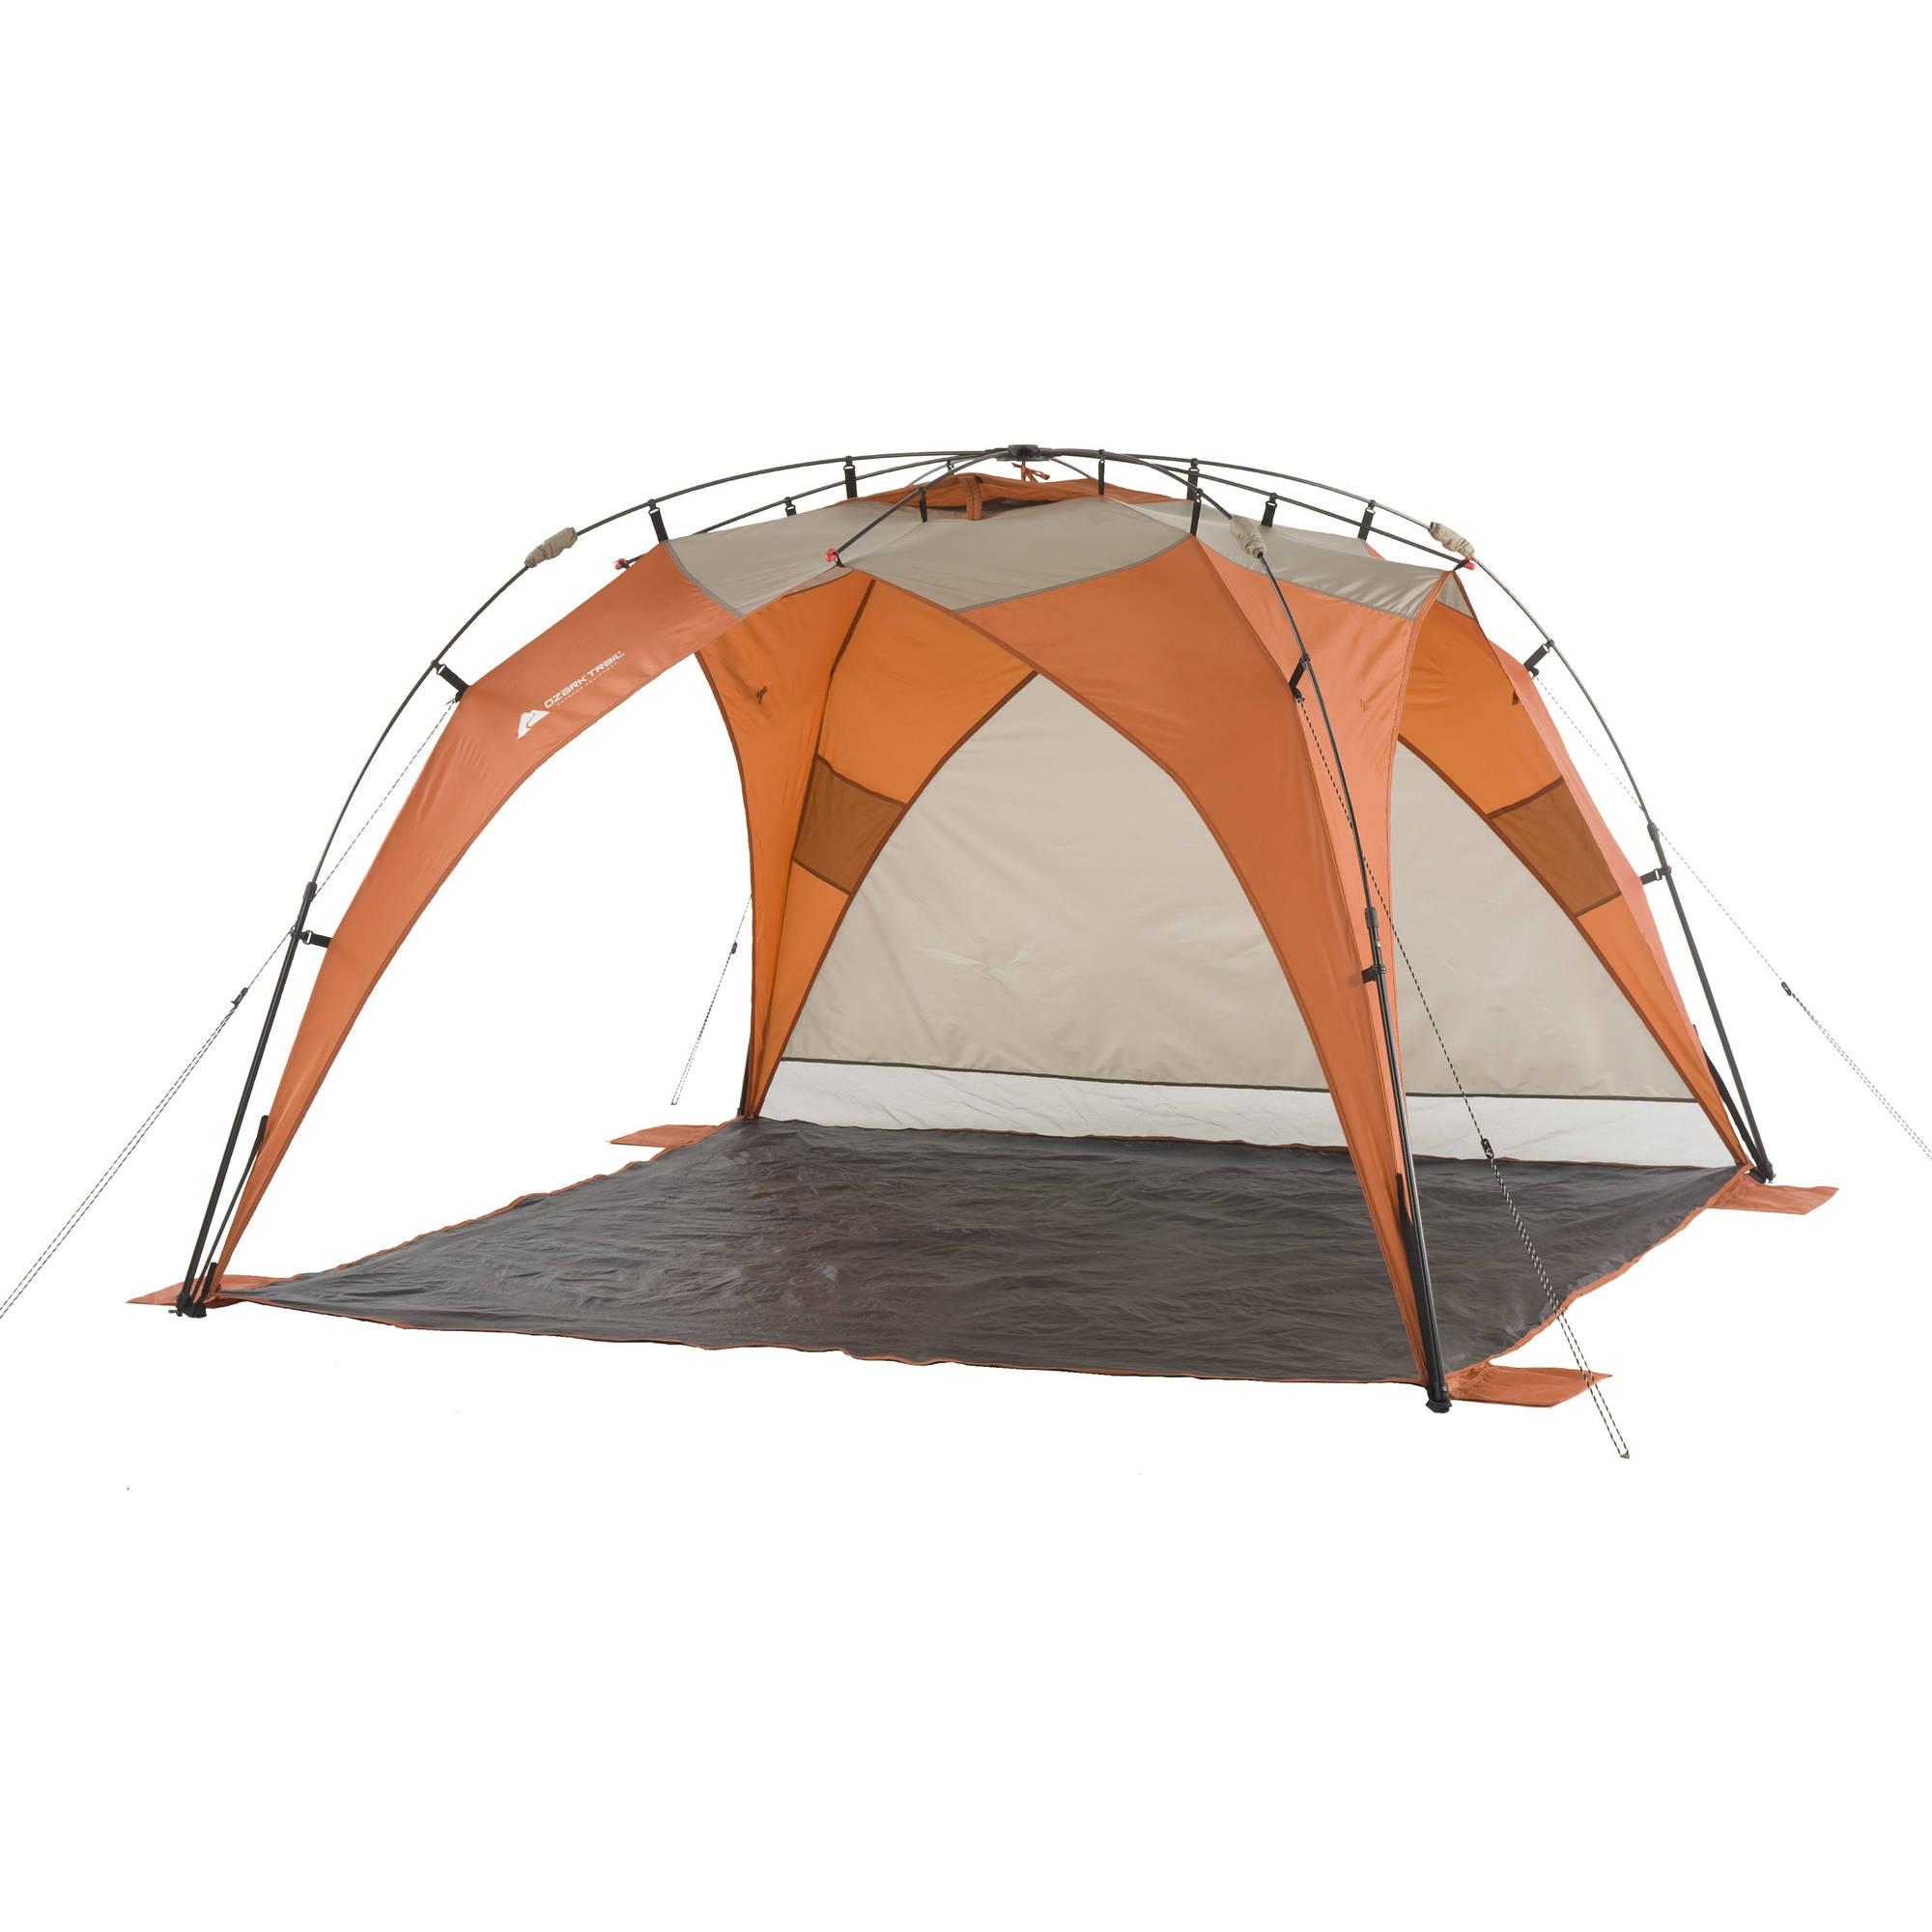 Ozark Trail 8' x 8' Instant Sun Shade with Removable Sun Wall